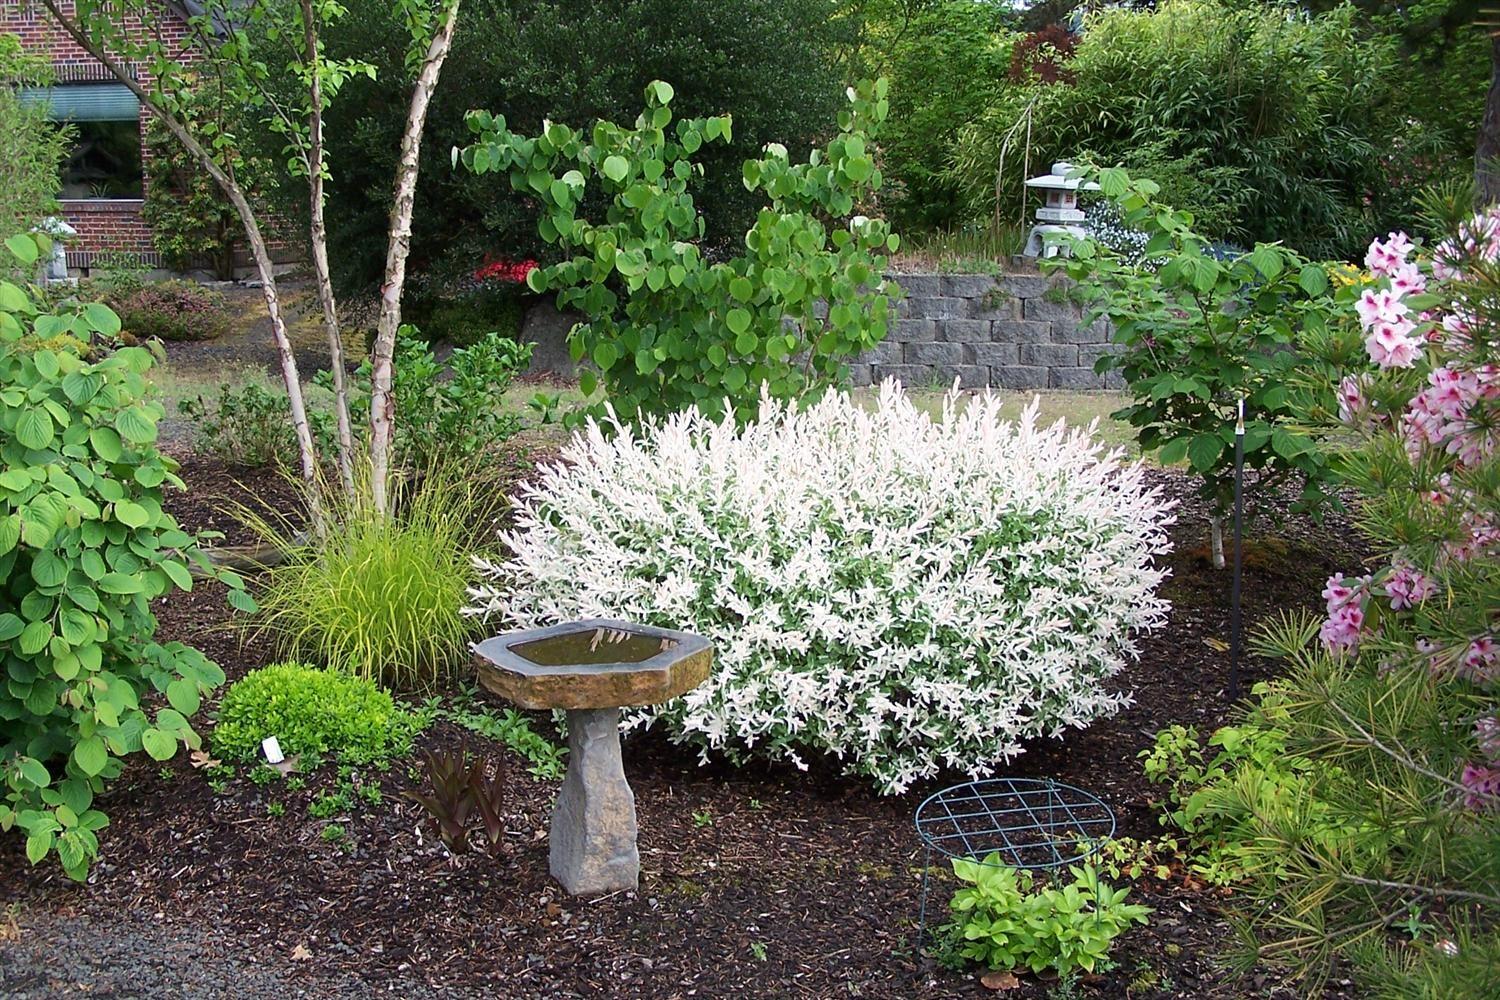 Dwarf Japanese Variegated Willow Shrub In Pots Google Search Plants Spring Landscaping Rock Garden Plants